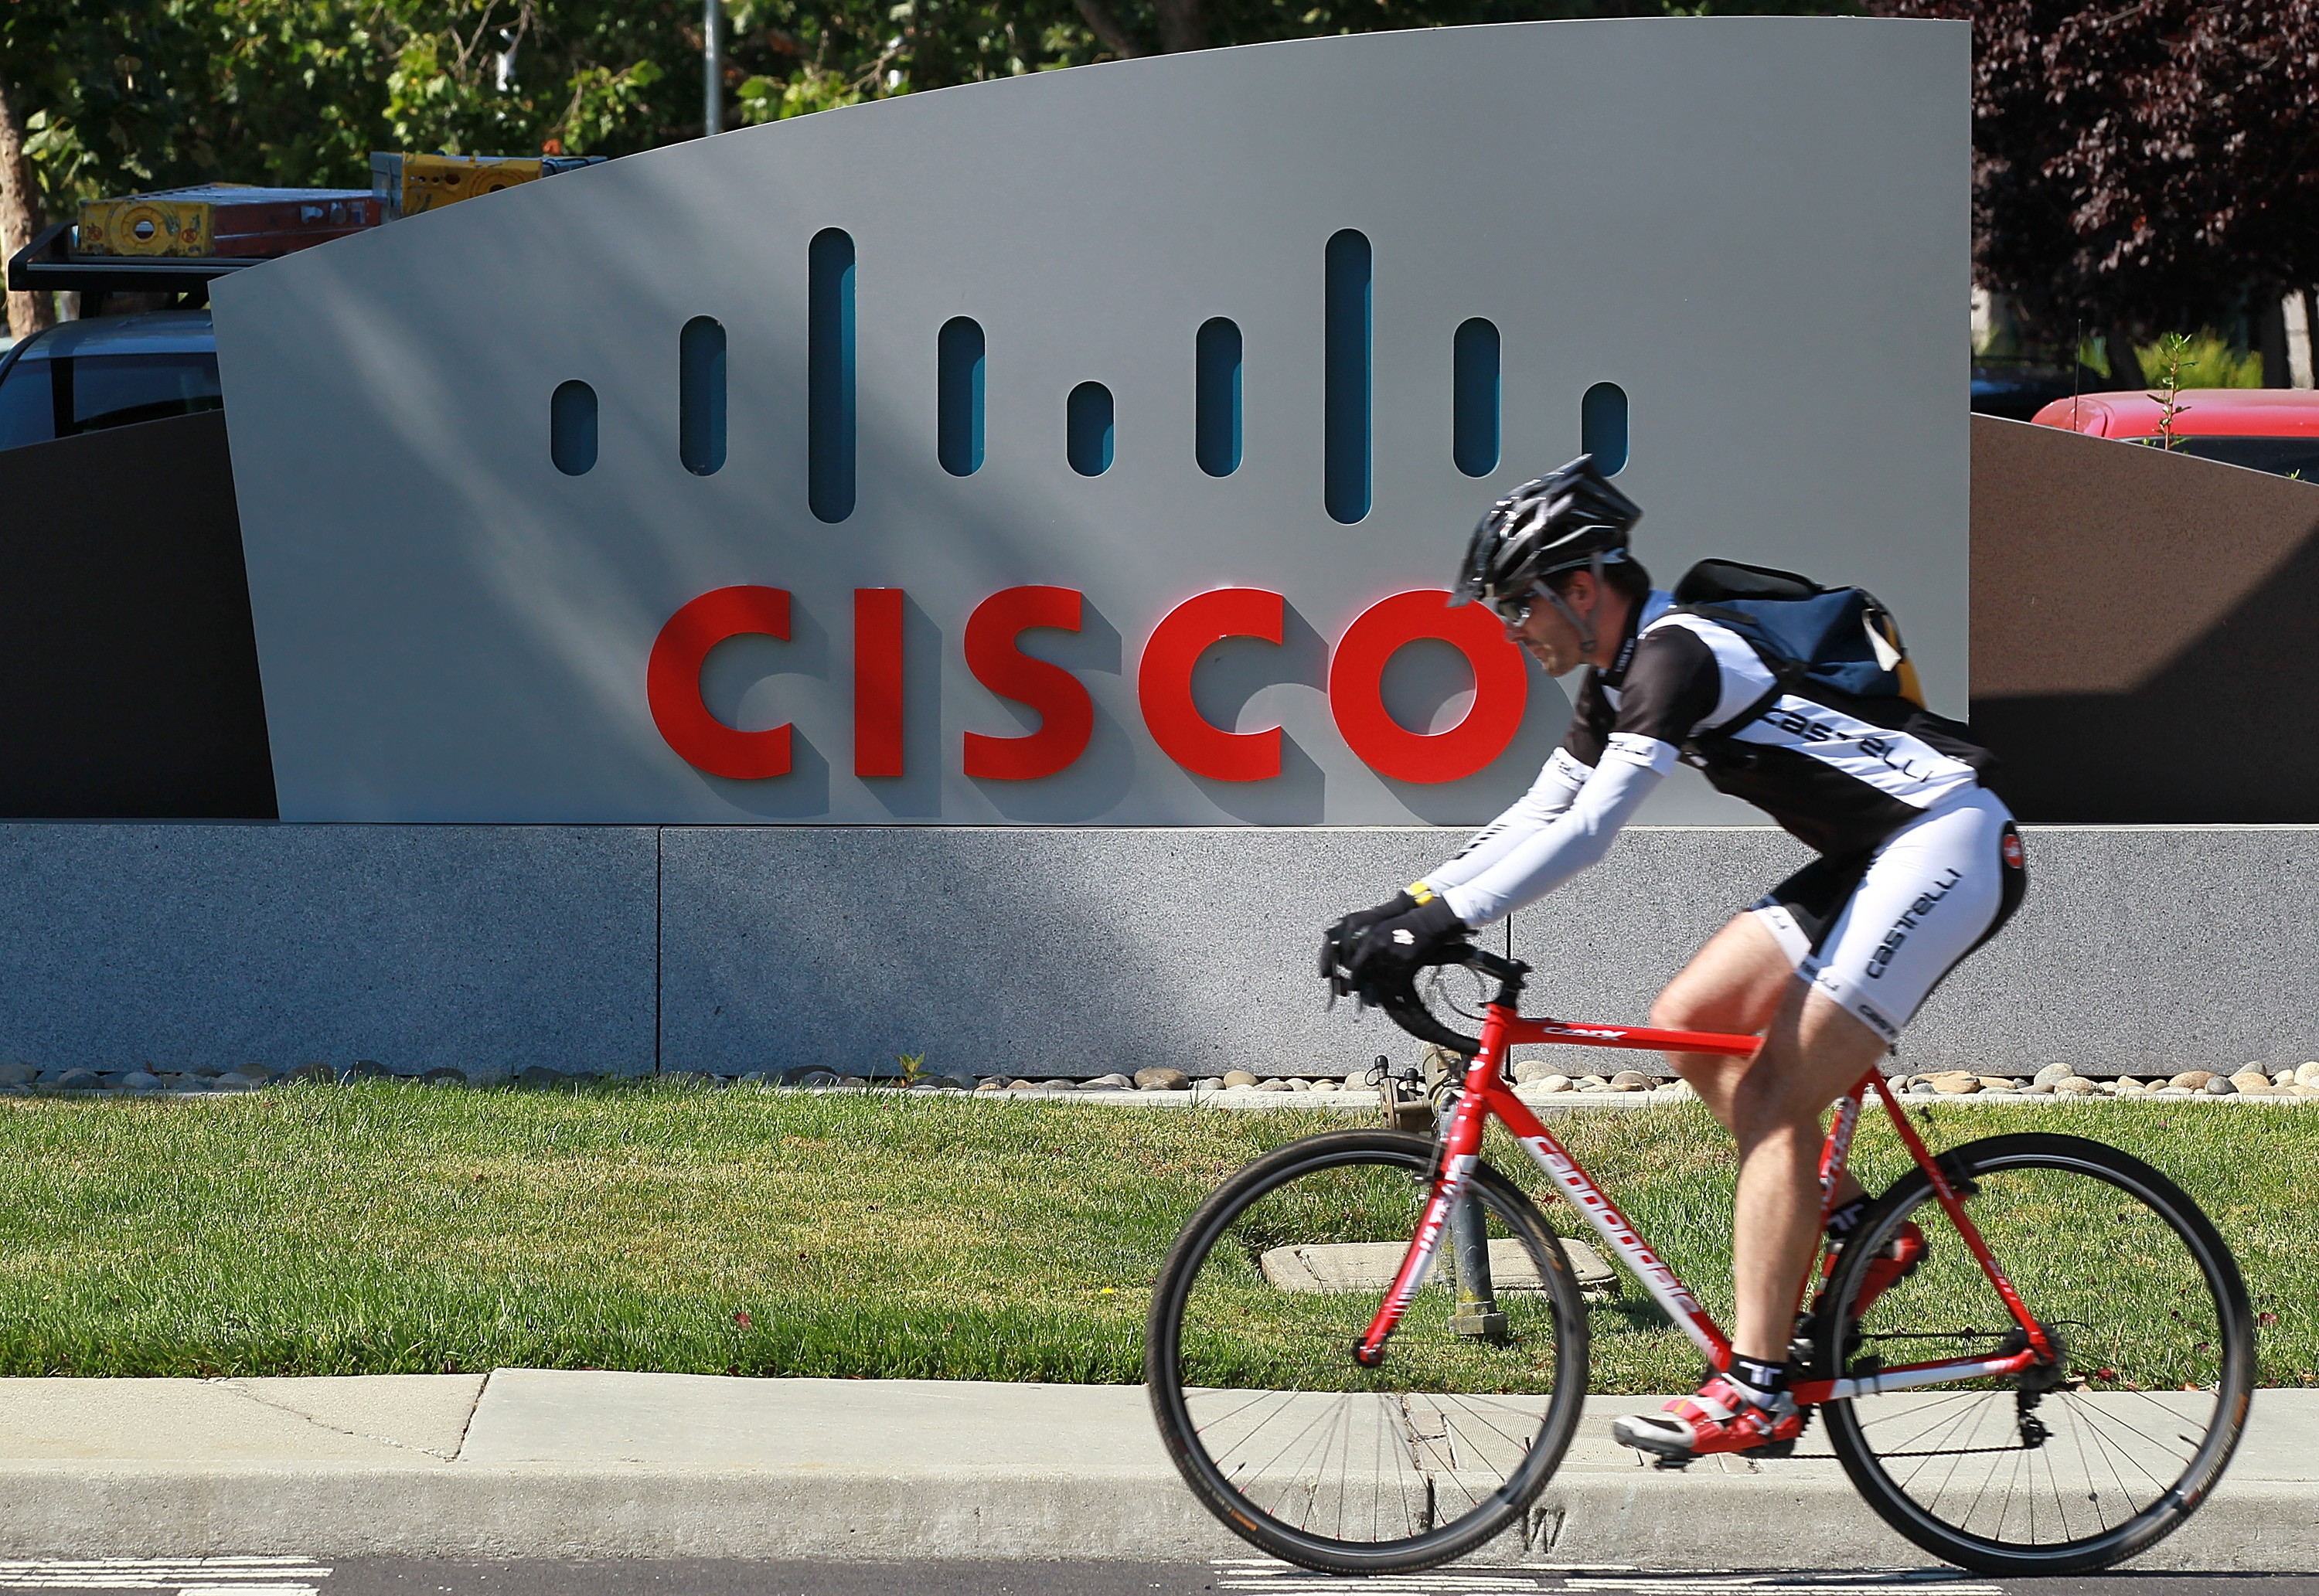 Report: Cisco Systems Is Laying Off 14,000 Employees | Fortune